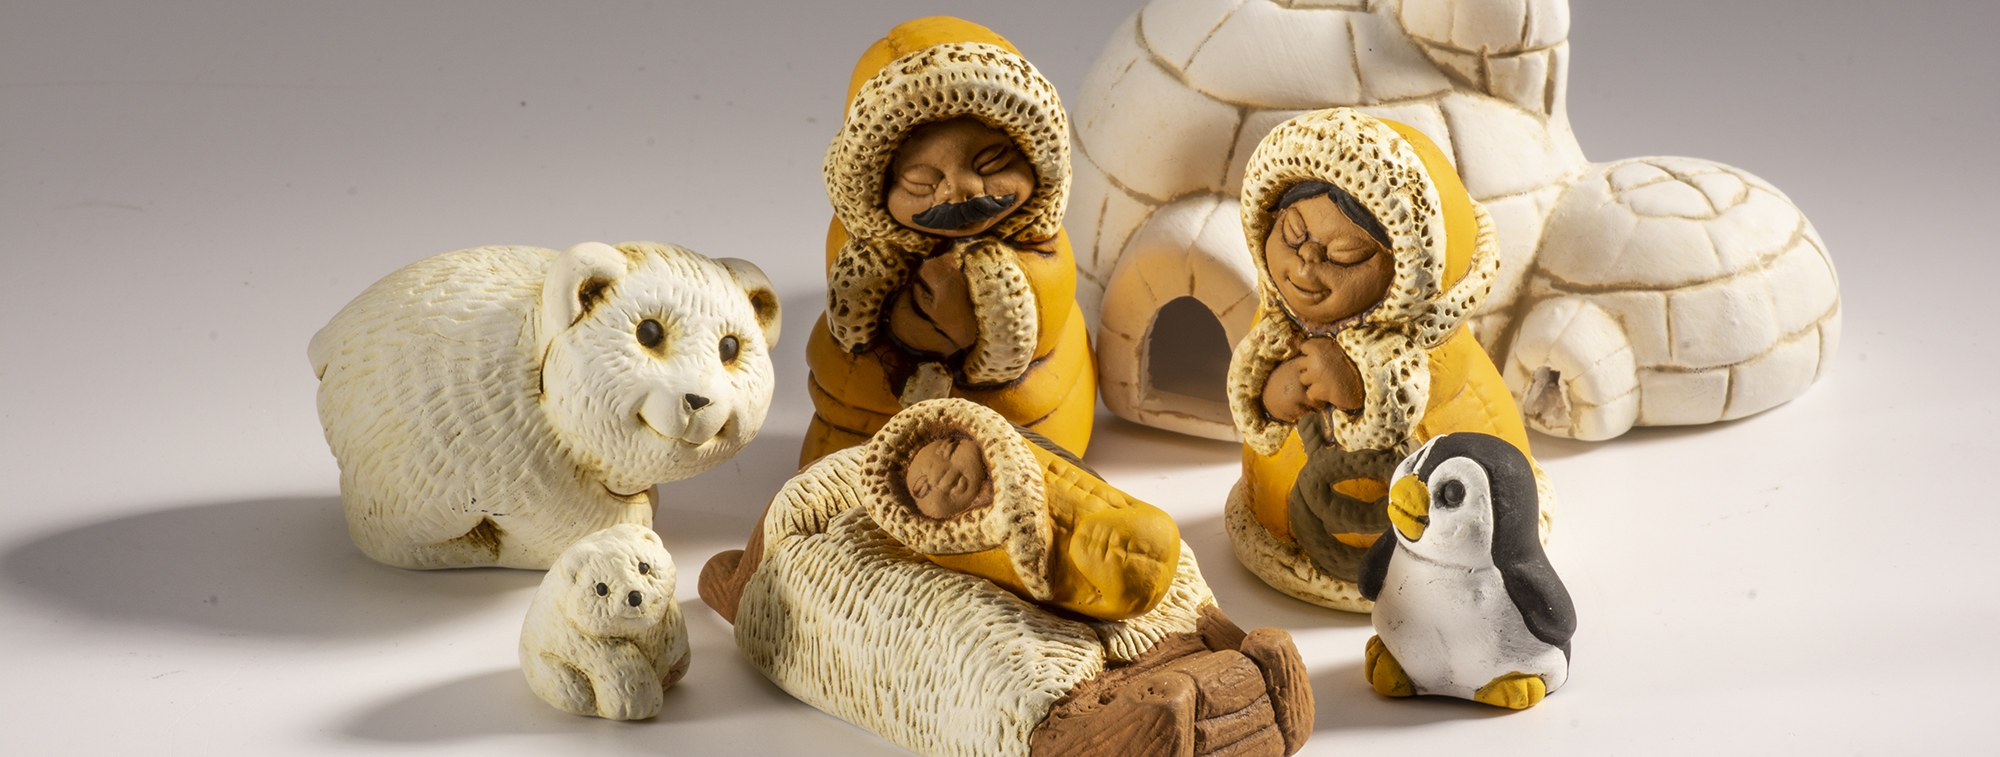 polar ceramic nativity